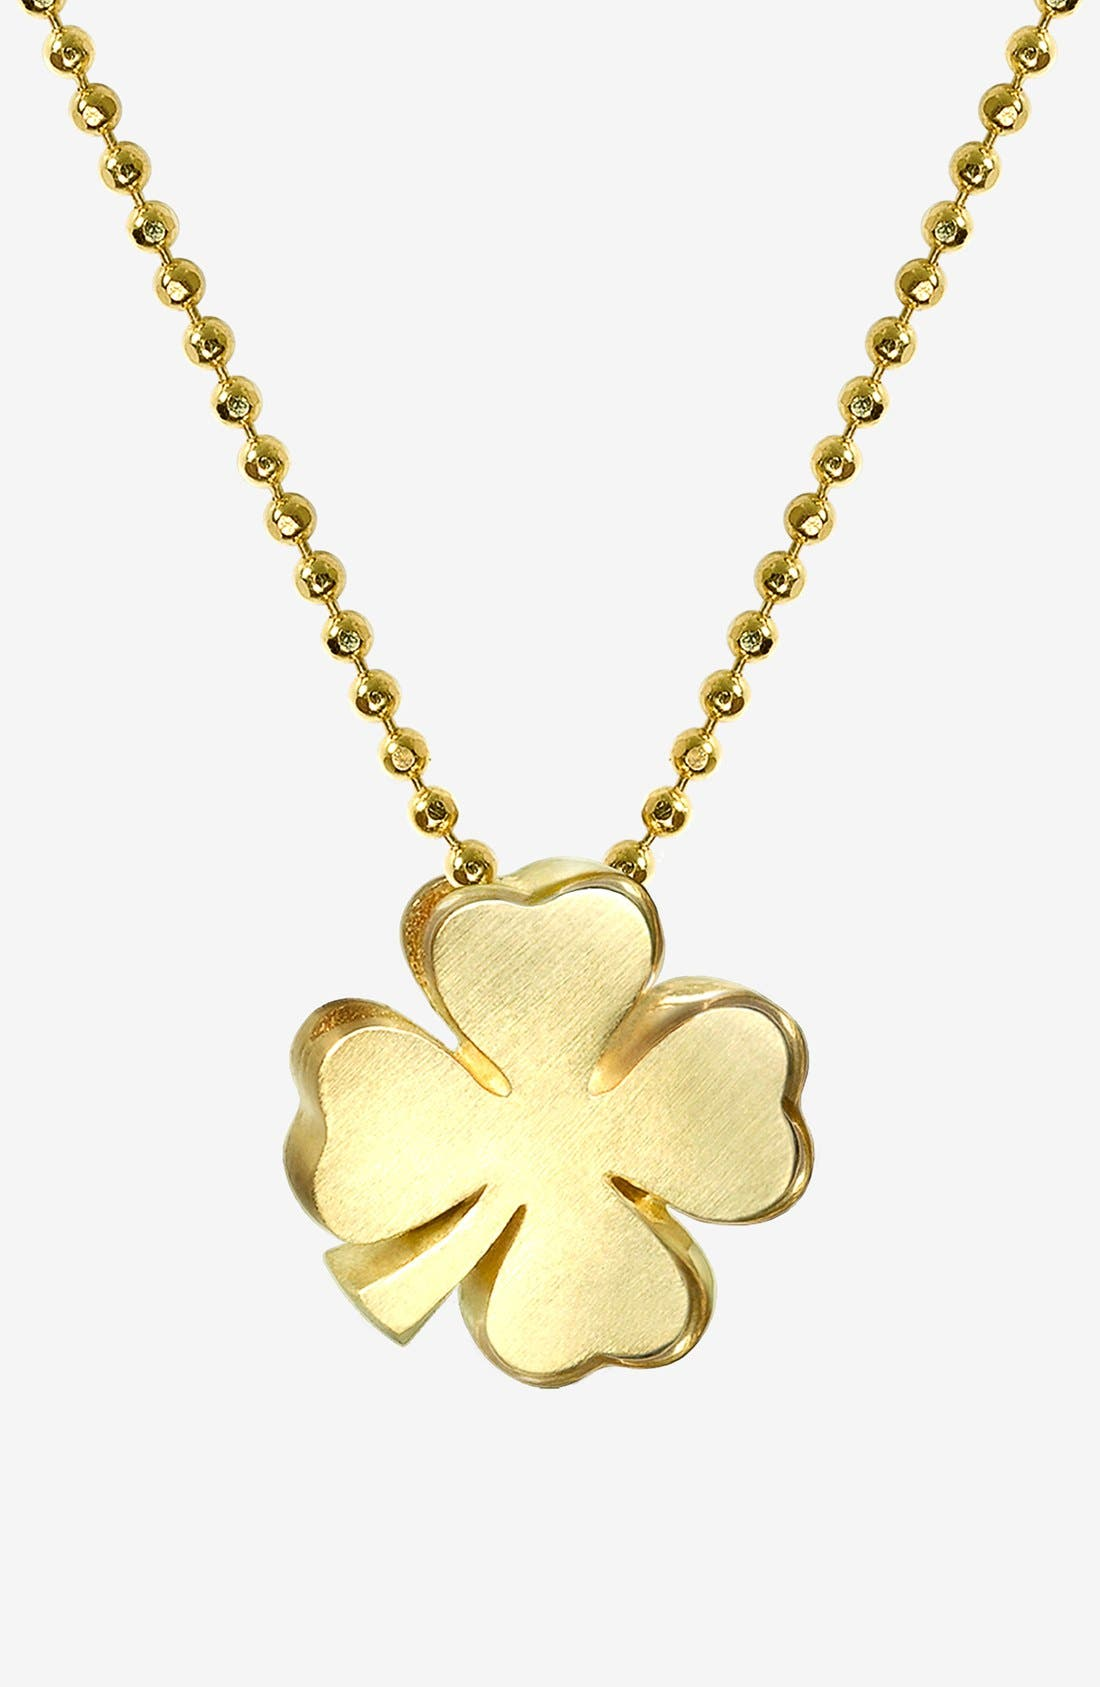 Alternate Image 1 Selected - Alex Woo 'Little Luck' Clover Pendant Necklace